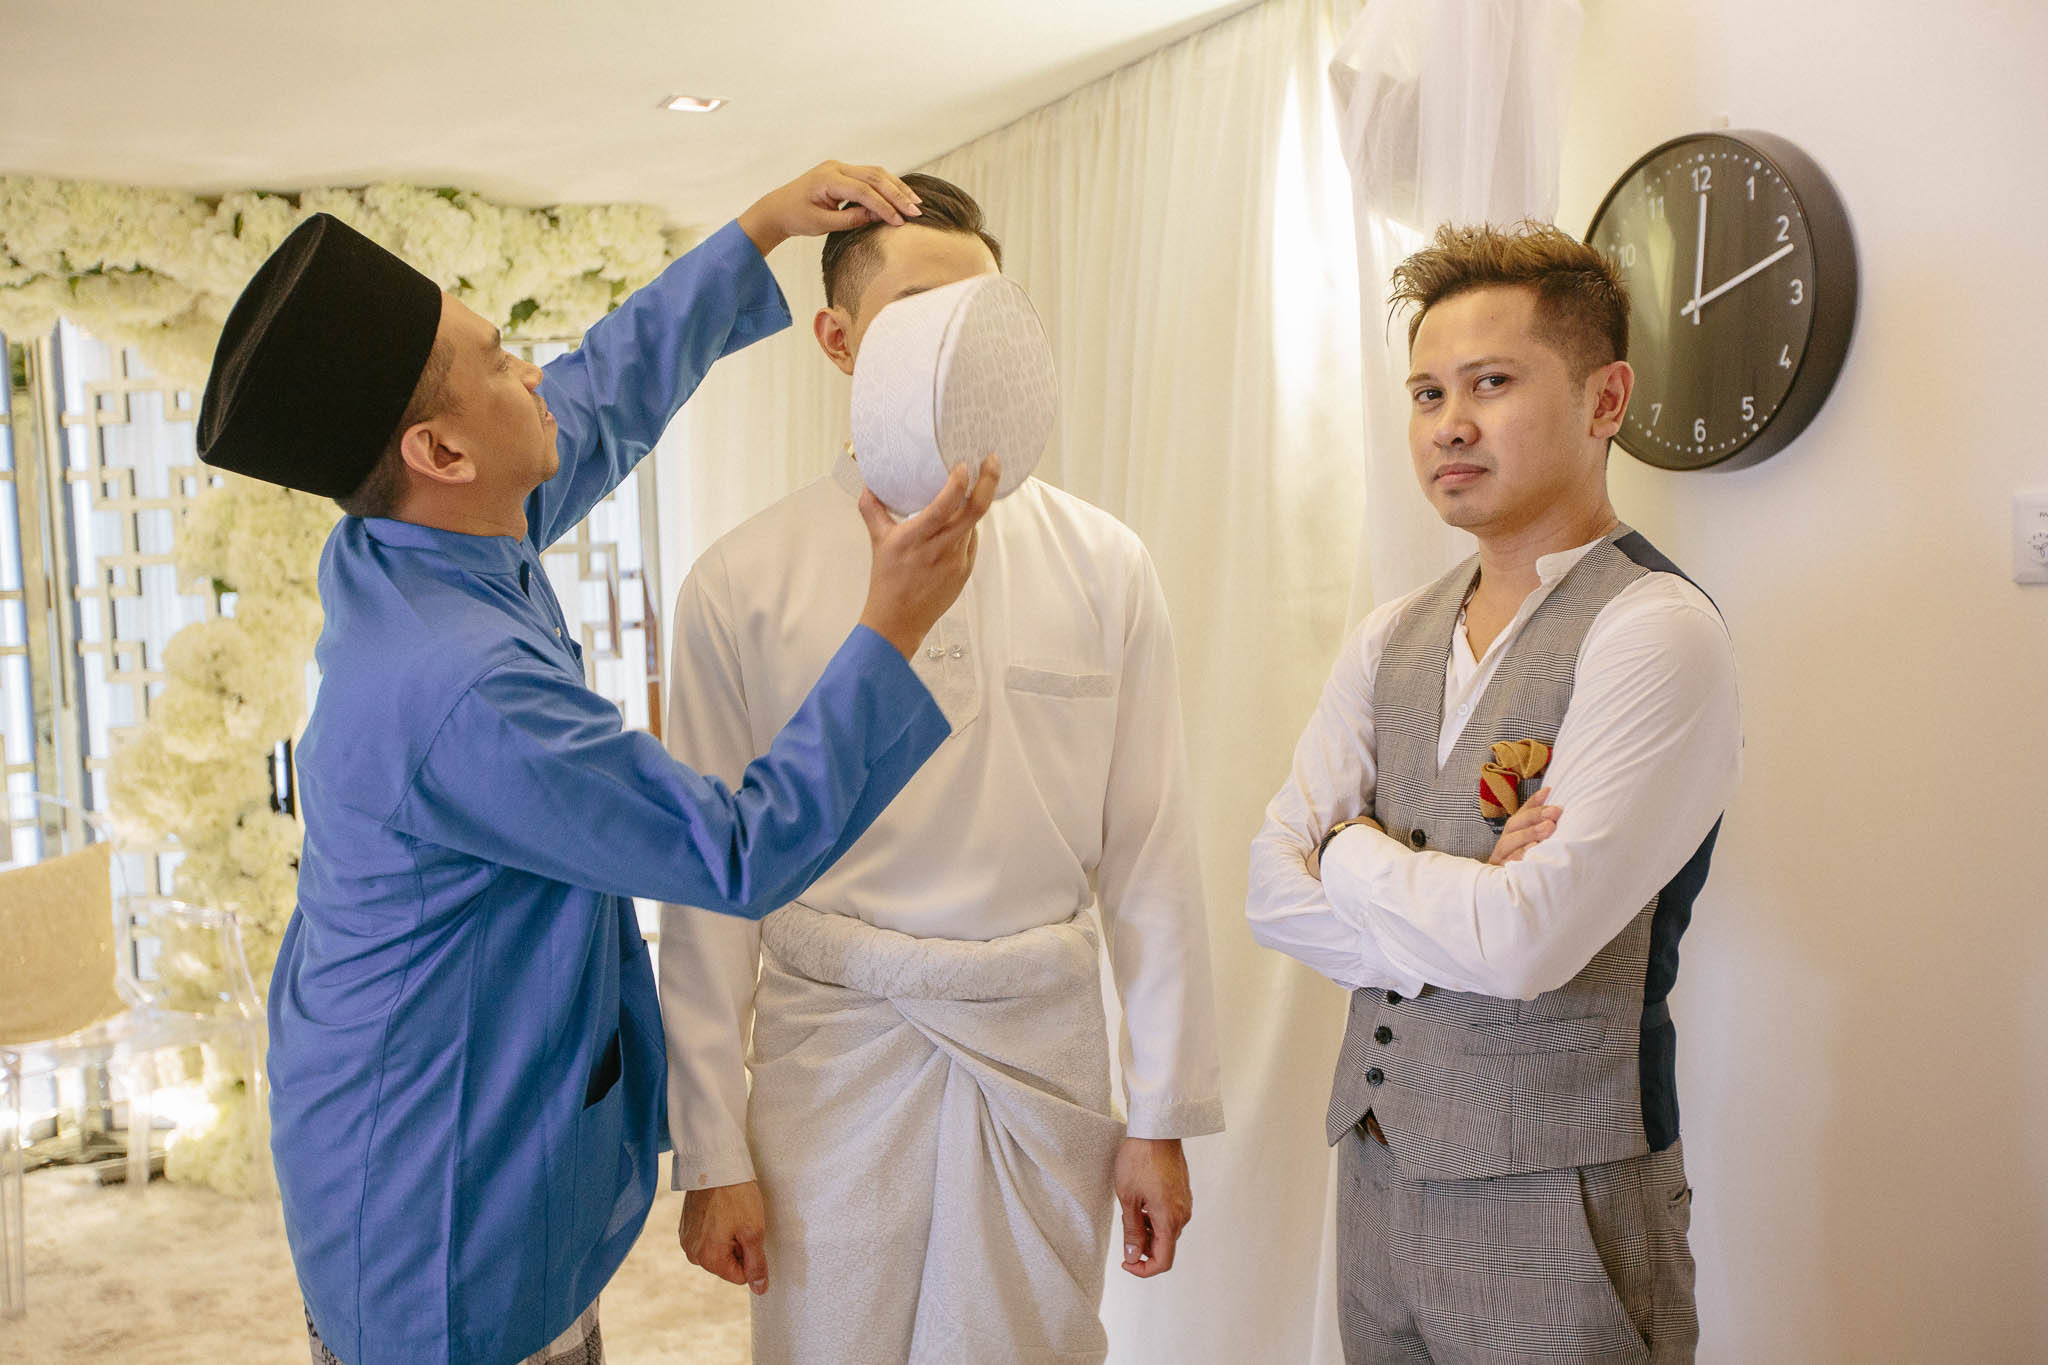 singapore-wedding-photographer-we-made-these-2016-selects-053.jpg